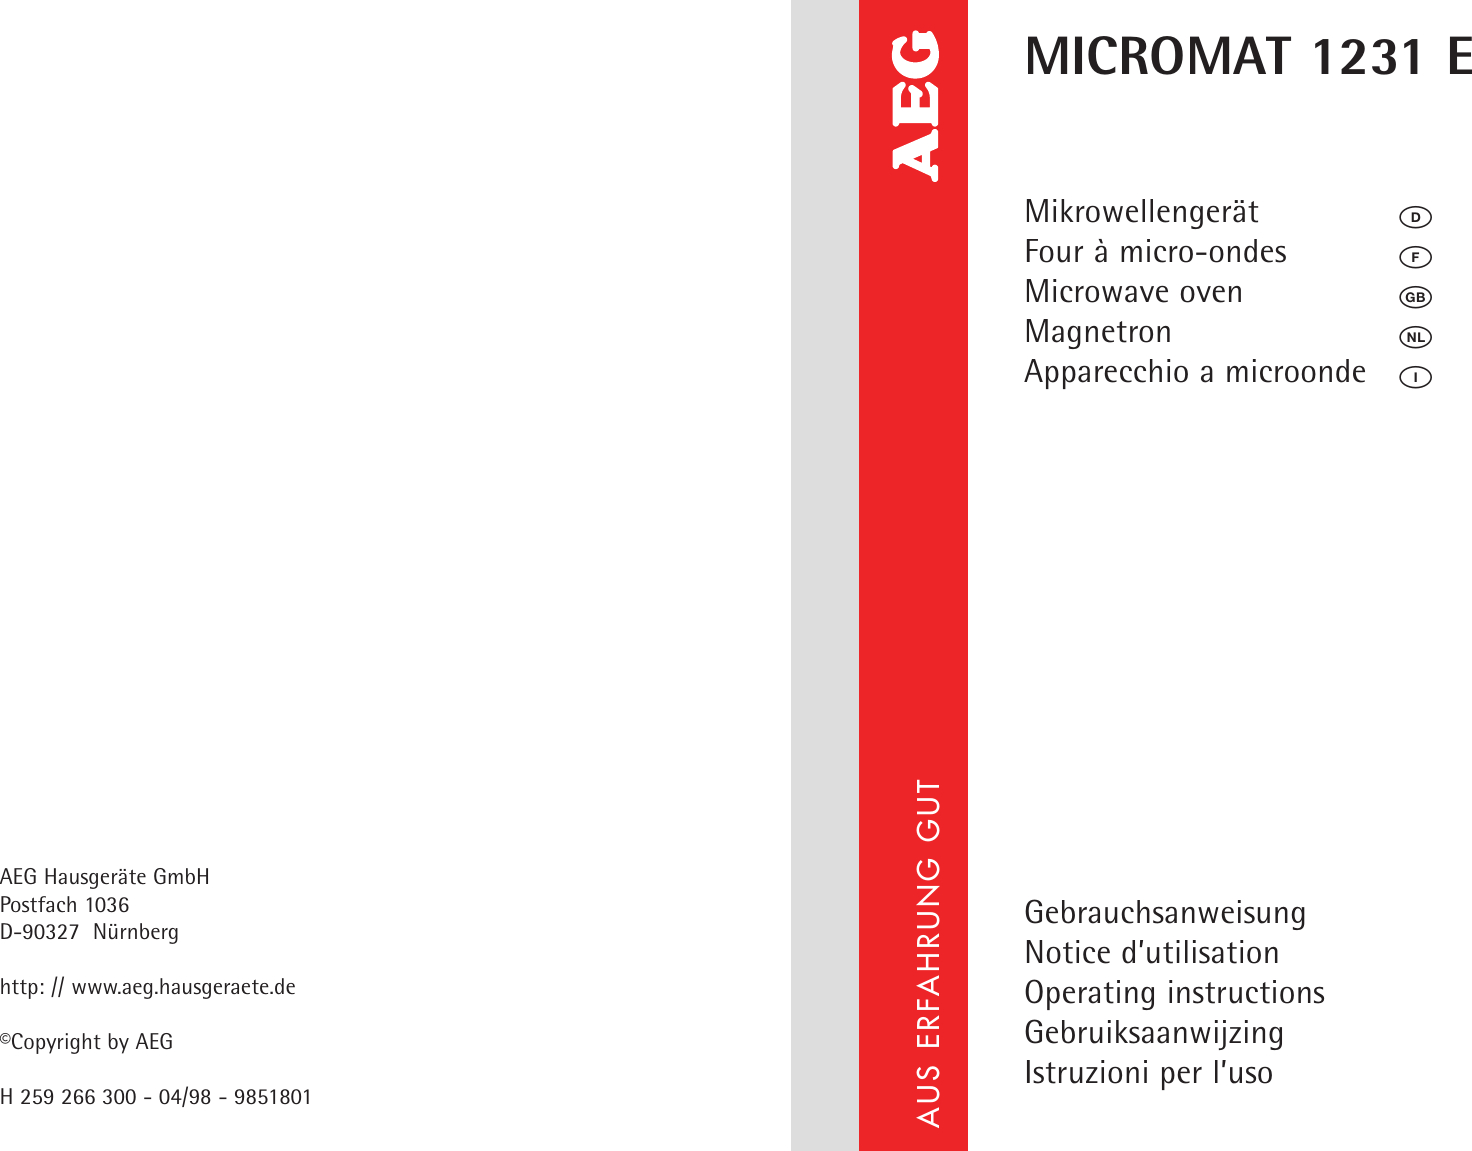 Aeg Magnetron Aeg Micromat 1231 E Users Manual 98518 01 Gb